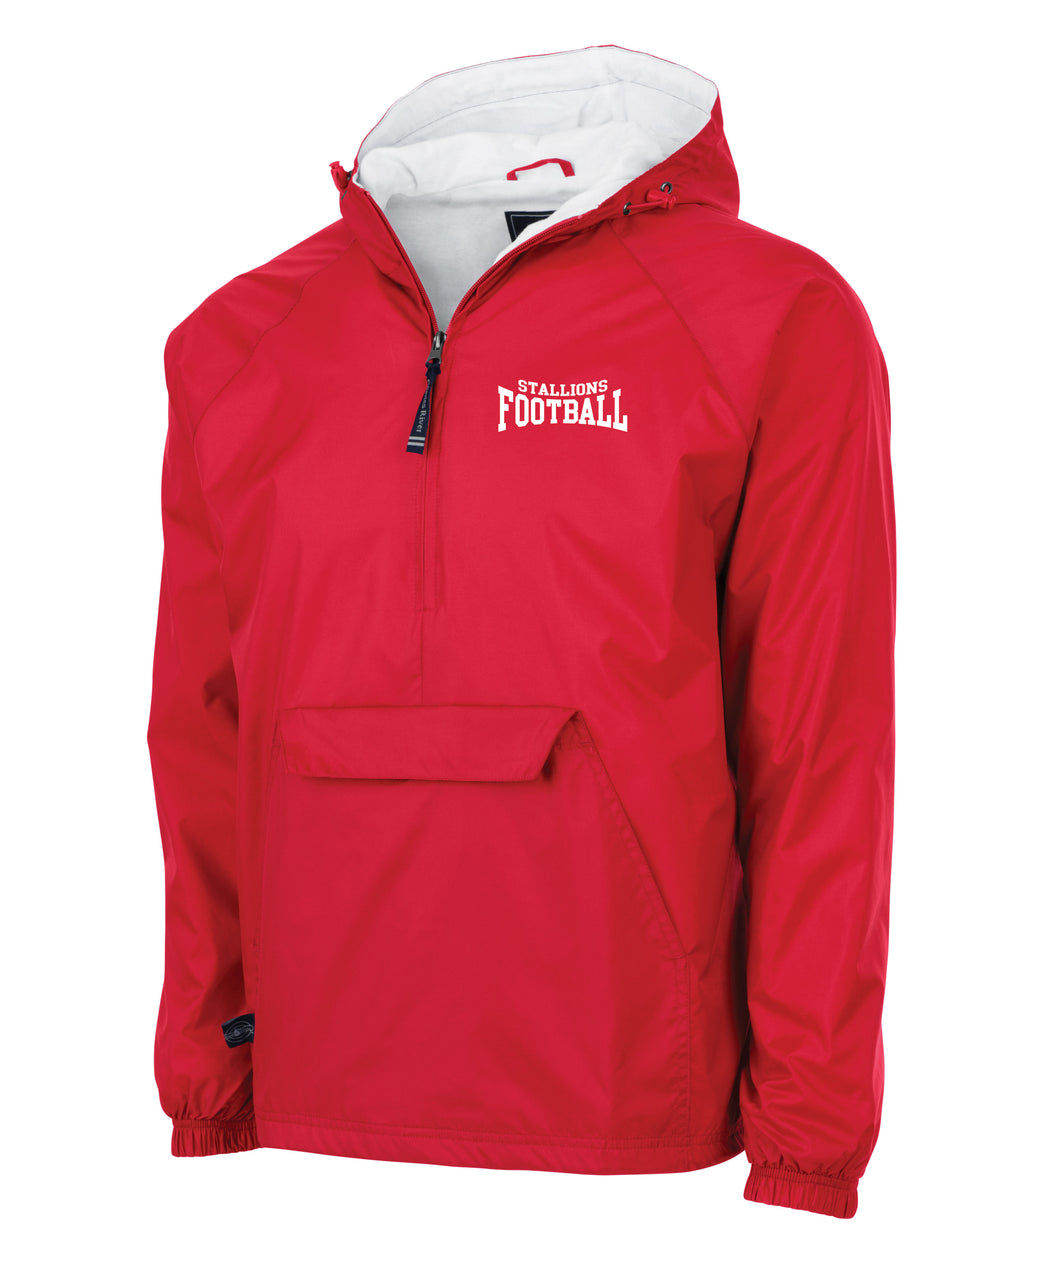 Youth Wind Jacket